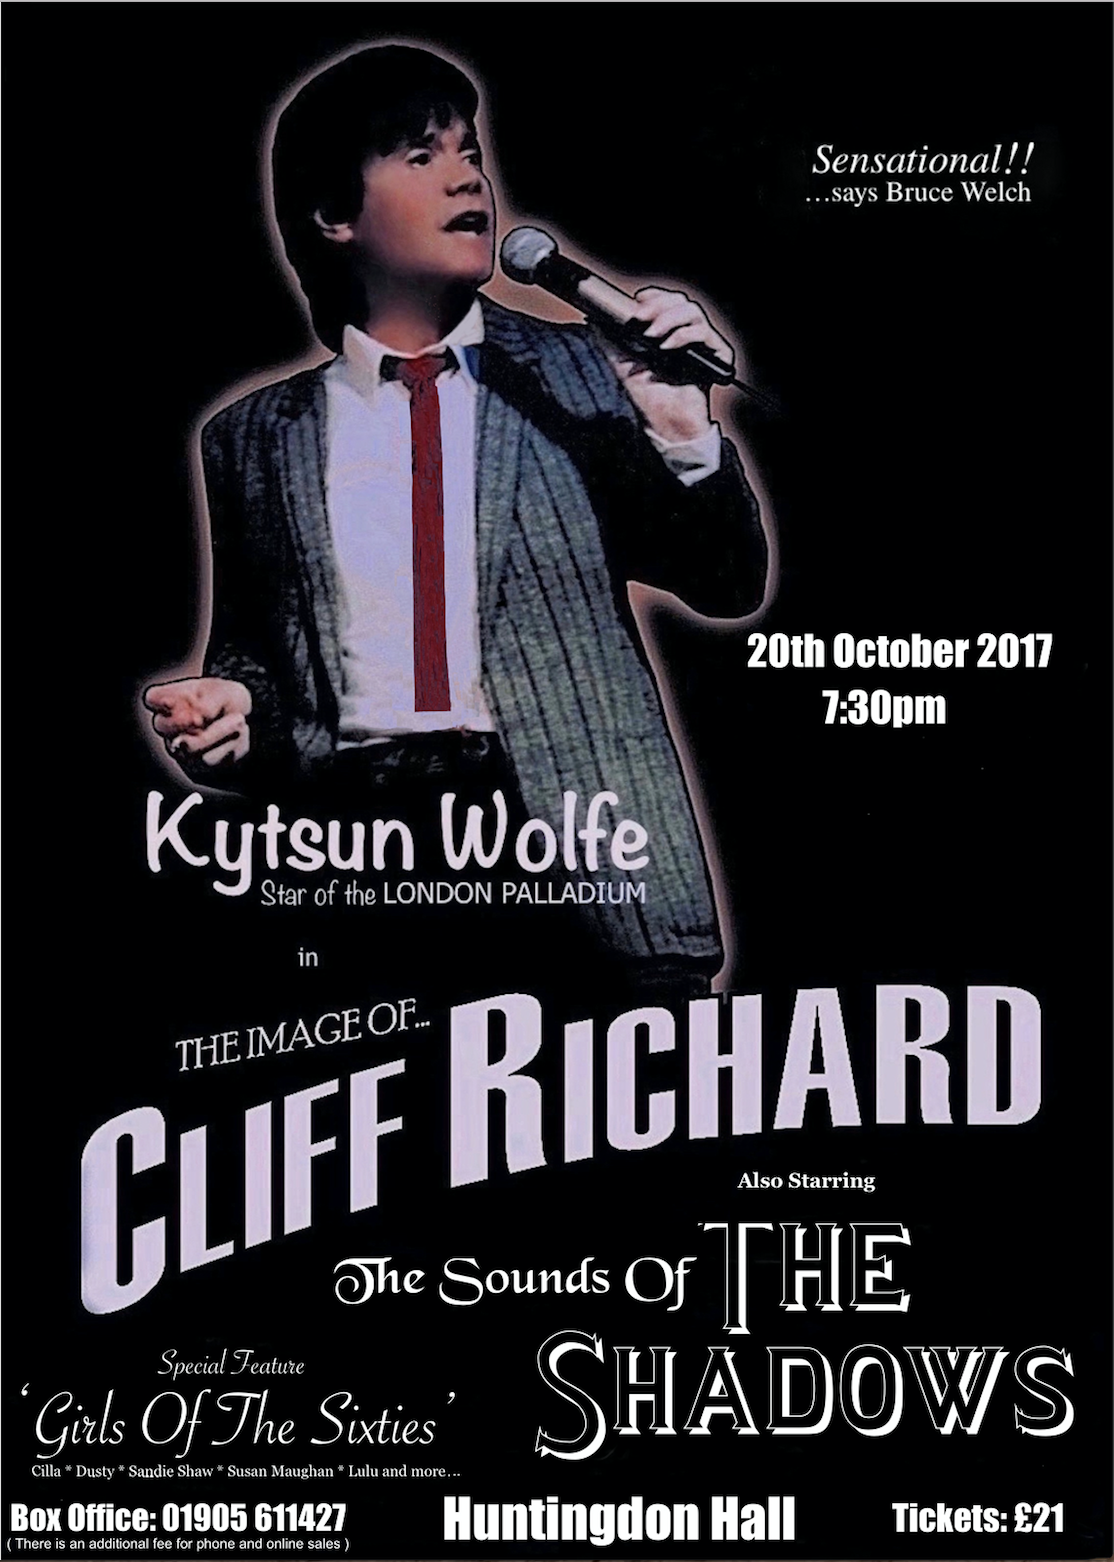 The Image of Cliff Richard & The Shadows